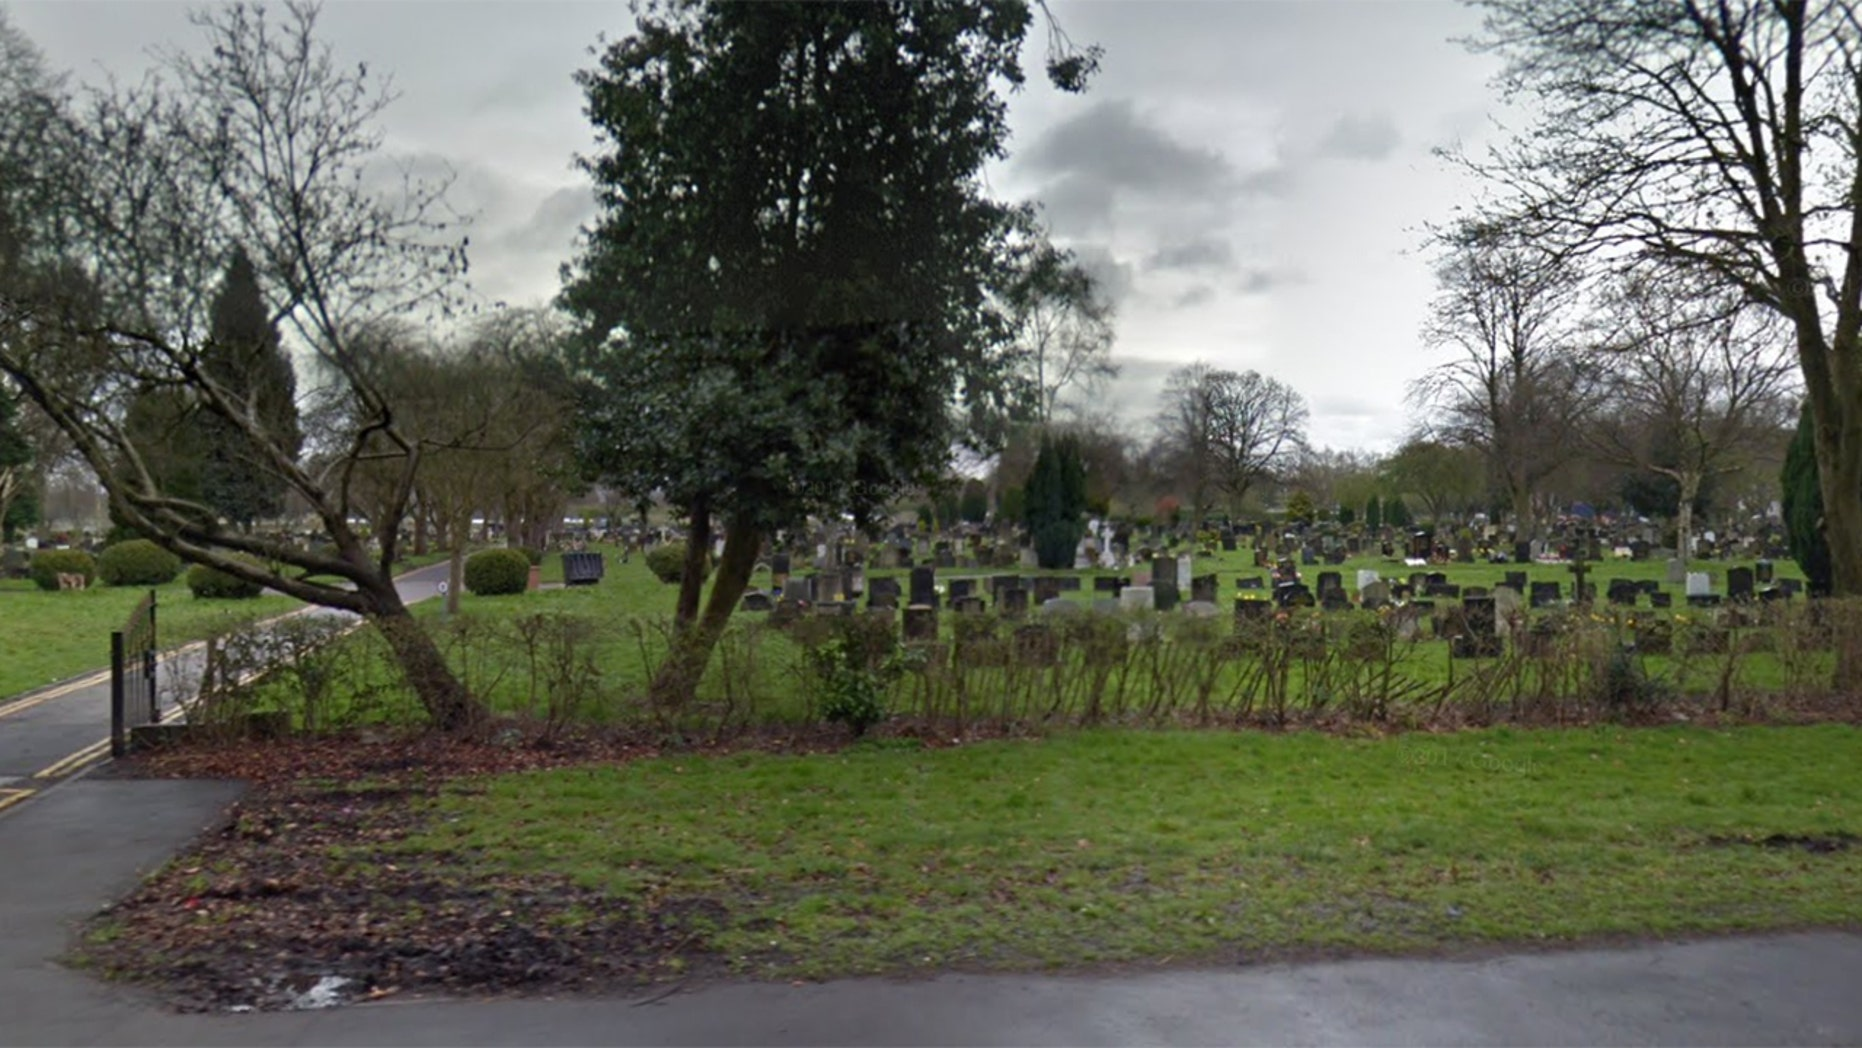 A father said he has been mourning for his daughter at the wrong grave for 30 years at Southern Cemetery in Manchester.